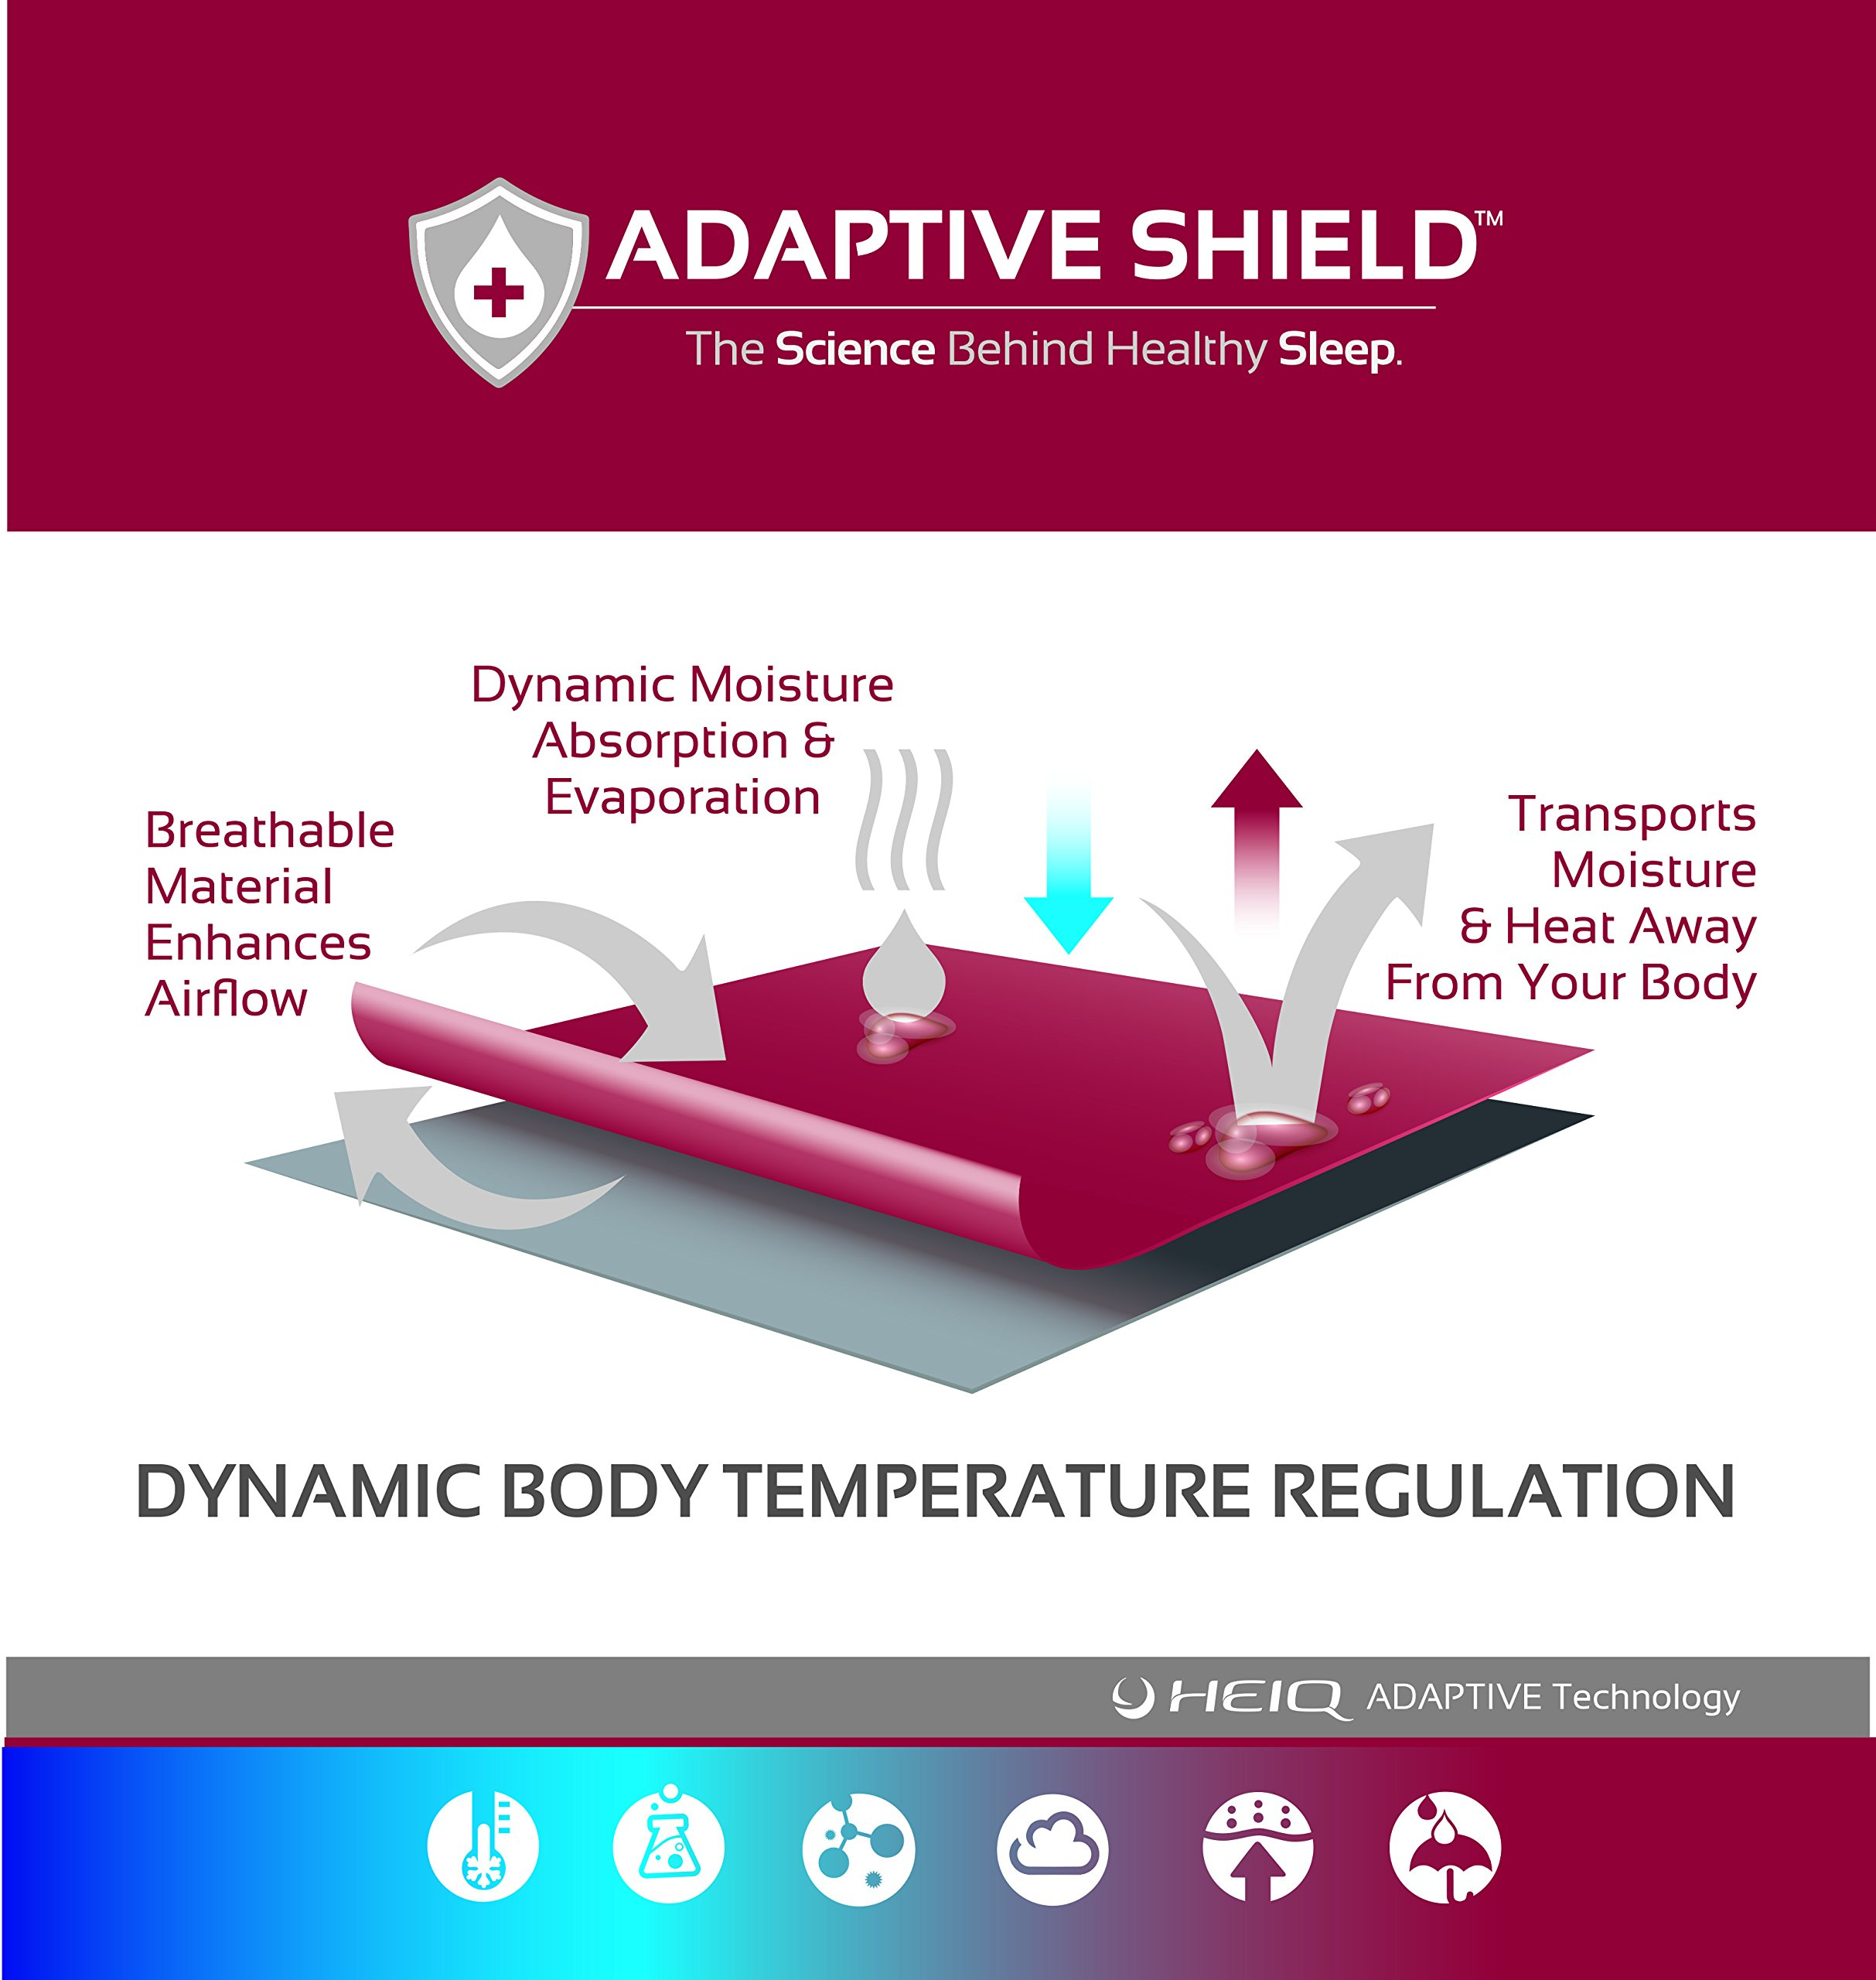 Adaptive Shield Premium Performance Mattress Protector - Lab Tested Allergy Free and Waterproof, Vinyl Free Noiseless Sleep, Crinkle Free, Machine Washable, and Compatible with All Mattresses (King) by Adaptive Shield, Inc. (Image #5)